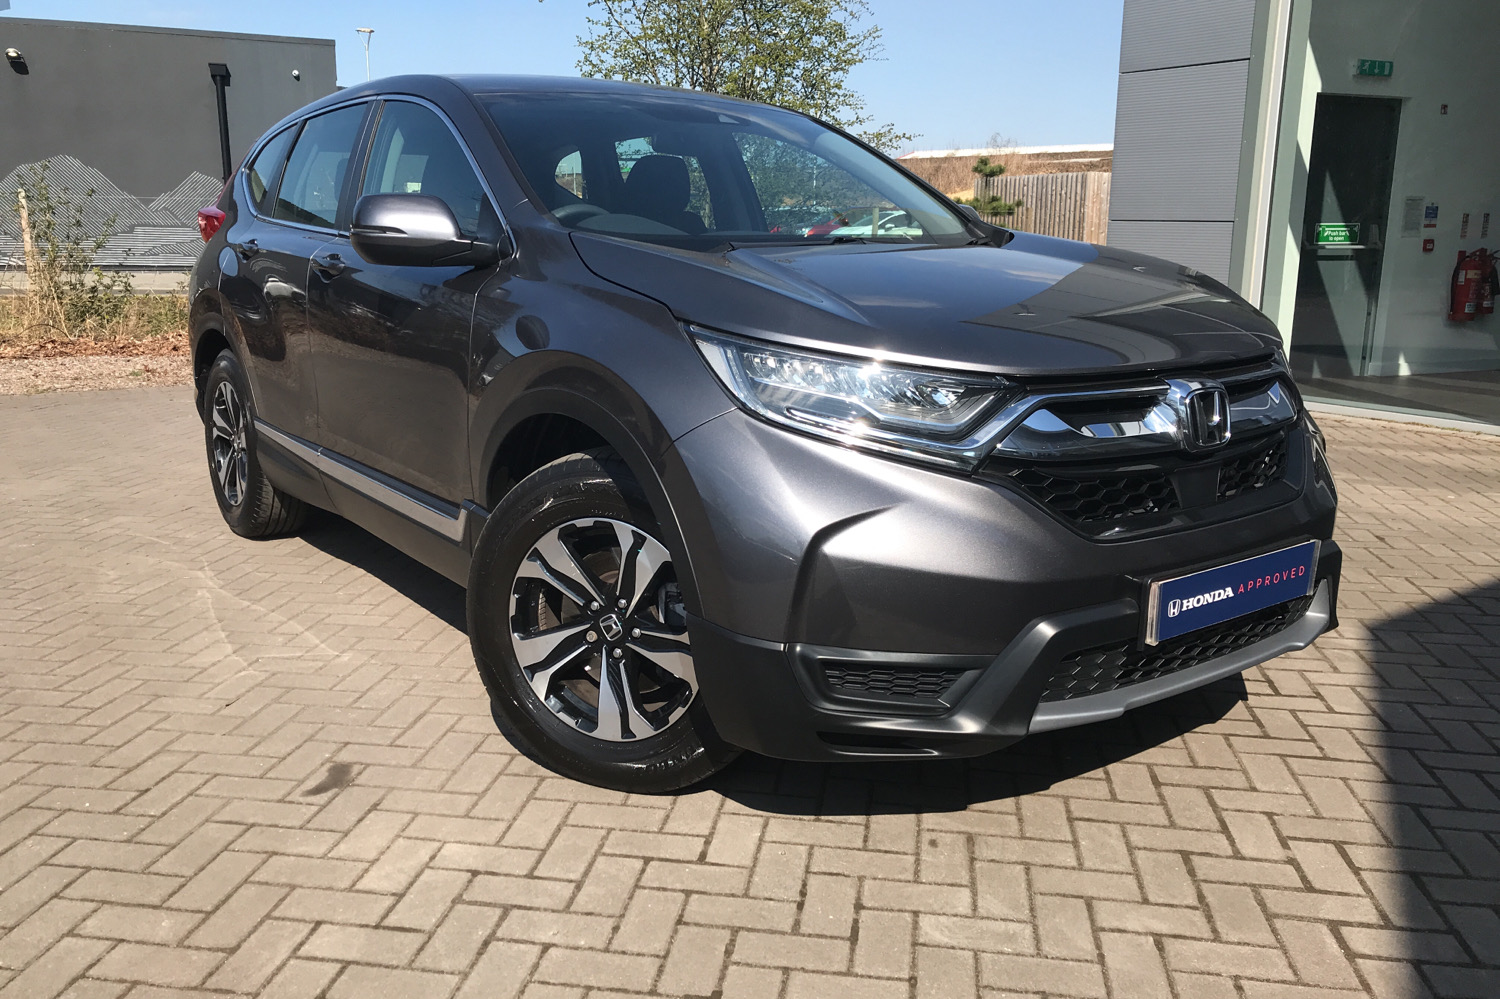 HONDA CR-V 1.5 VTEC Turbo S 5dr 2WD